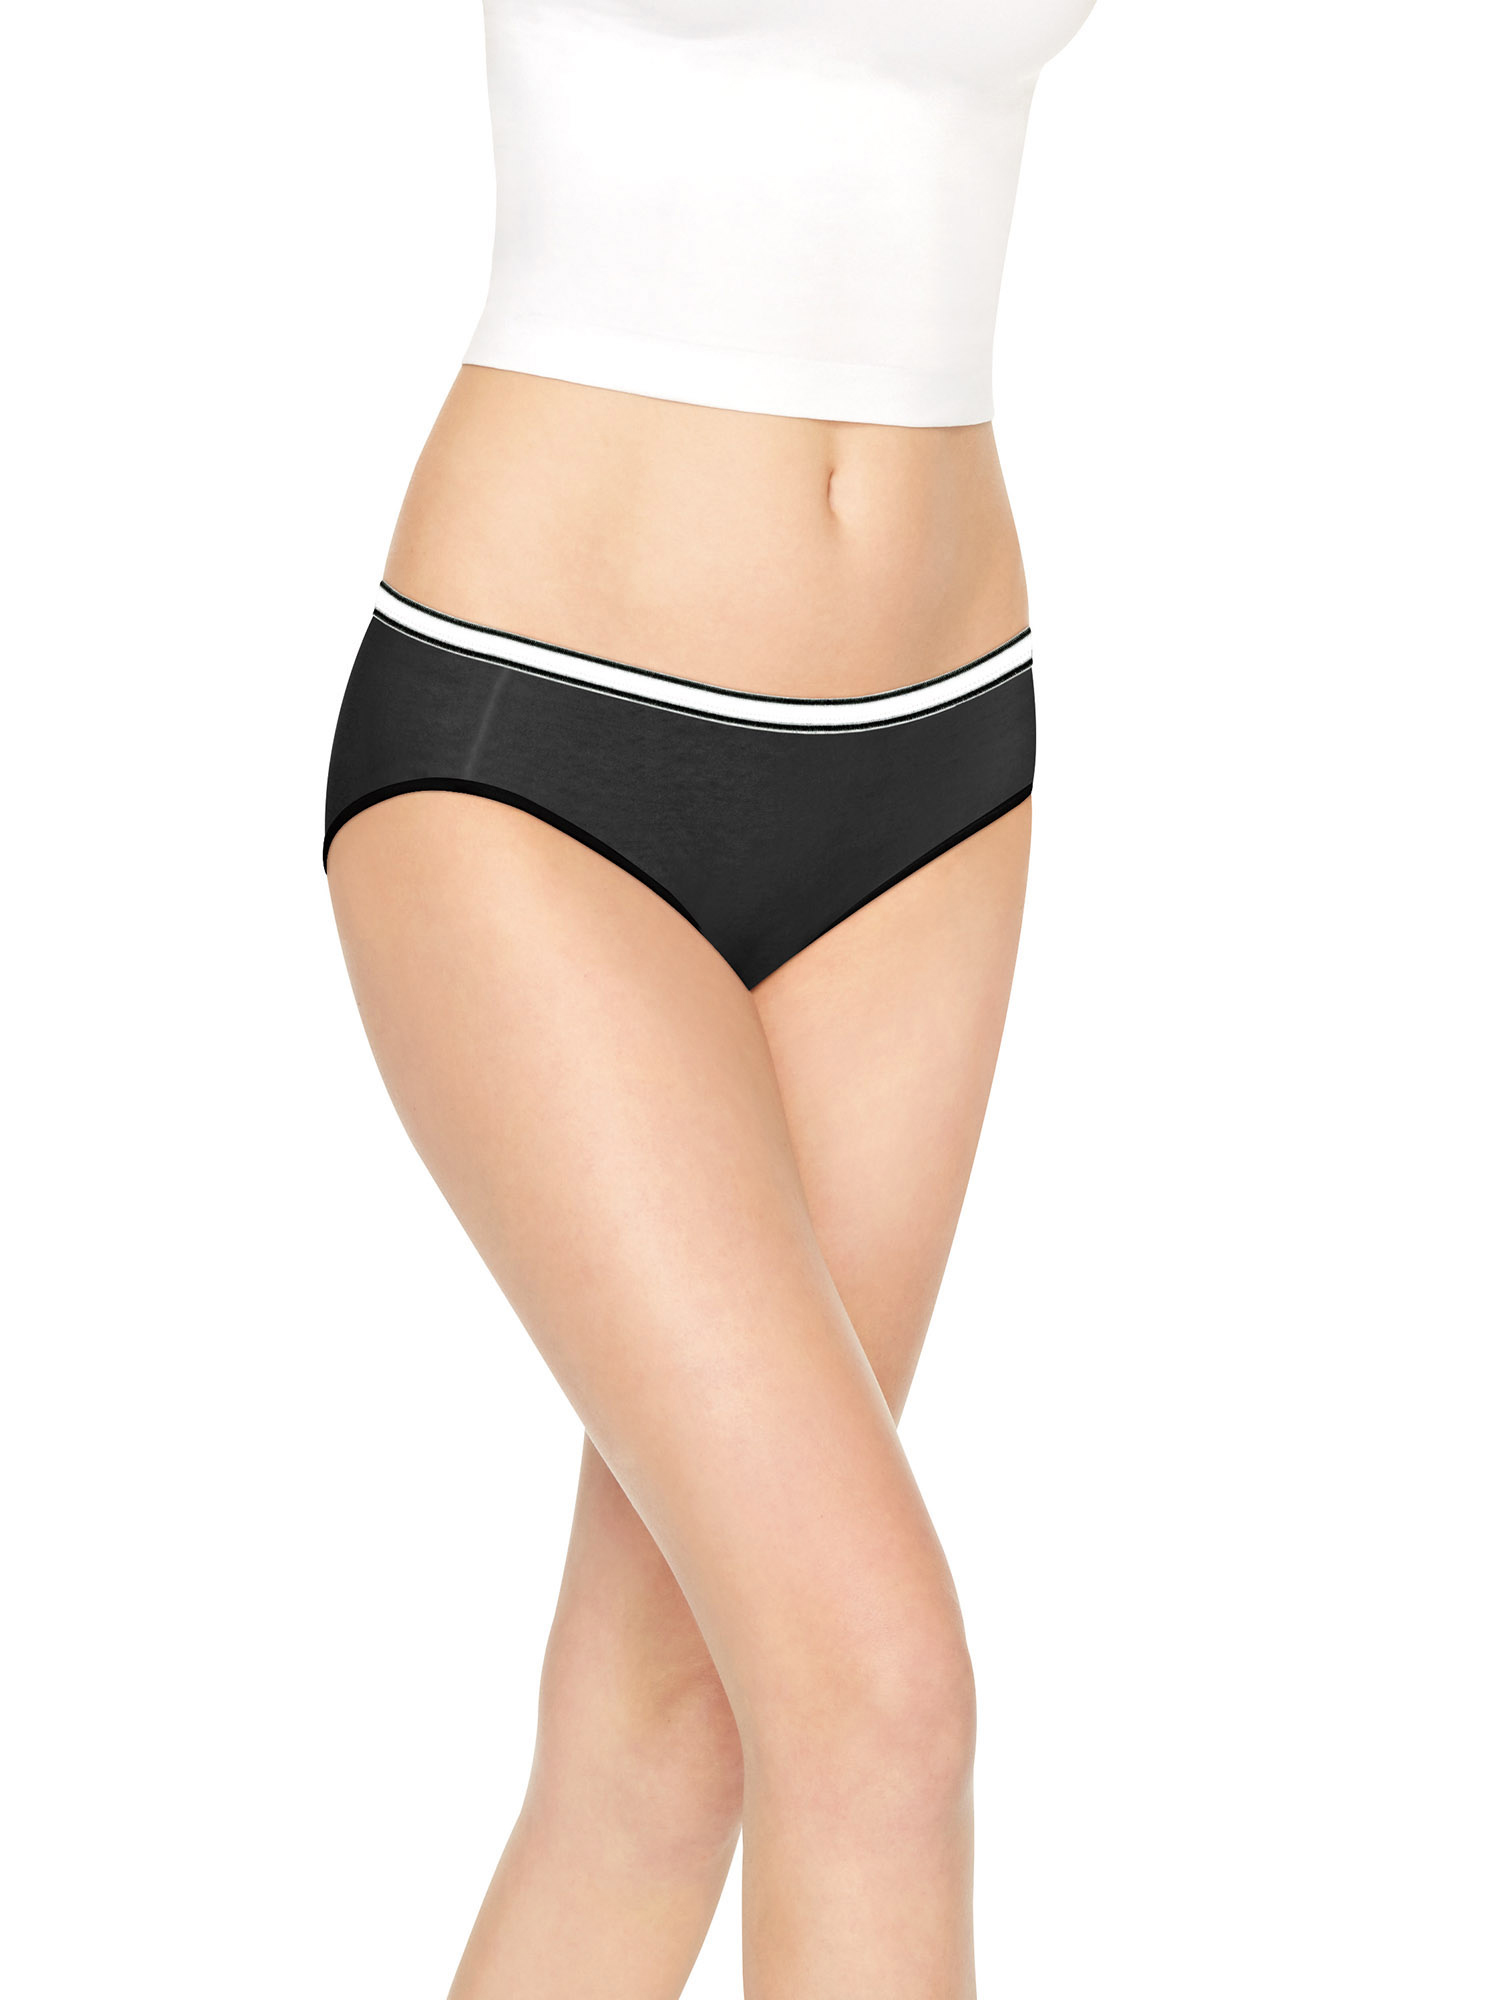 Women's Cool Comfort Cotton Stretch Hipster Panties - 8 Pack